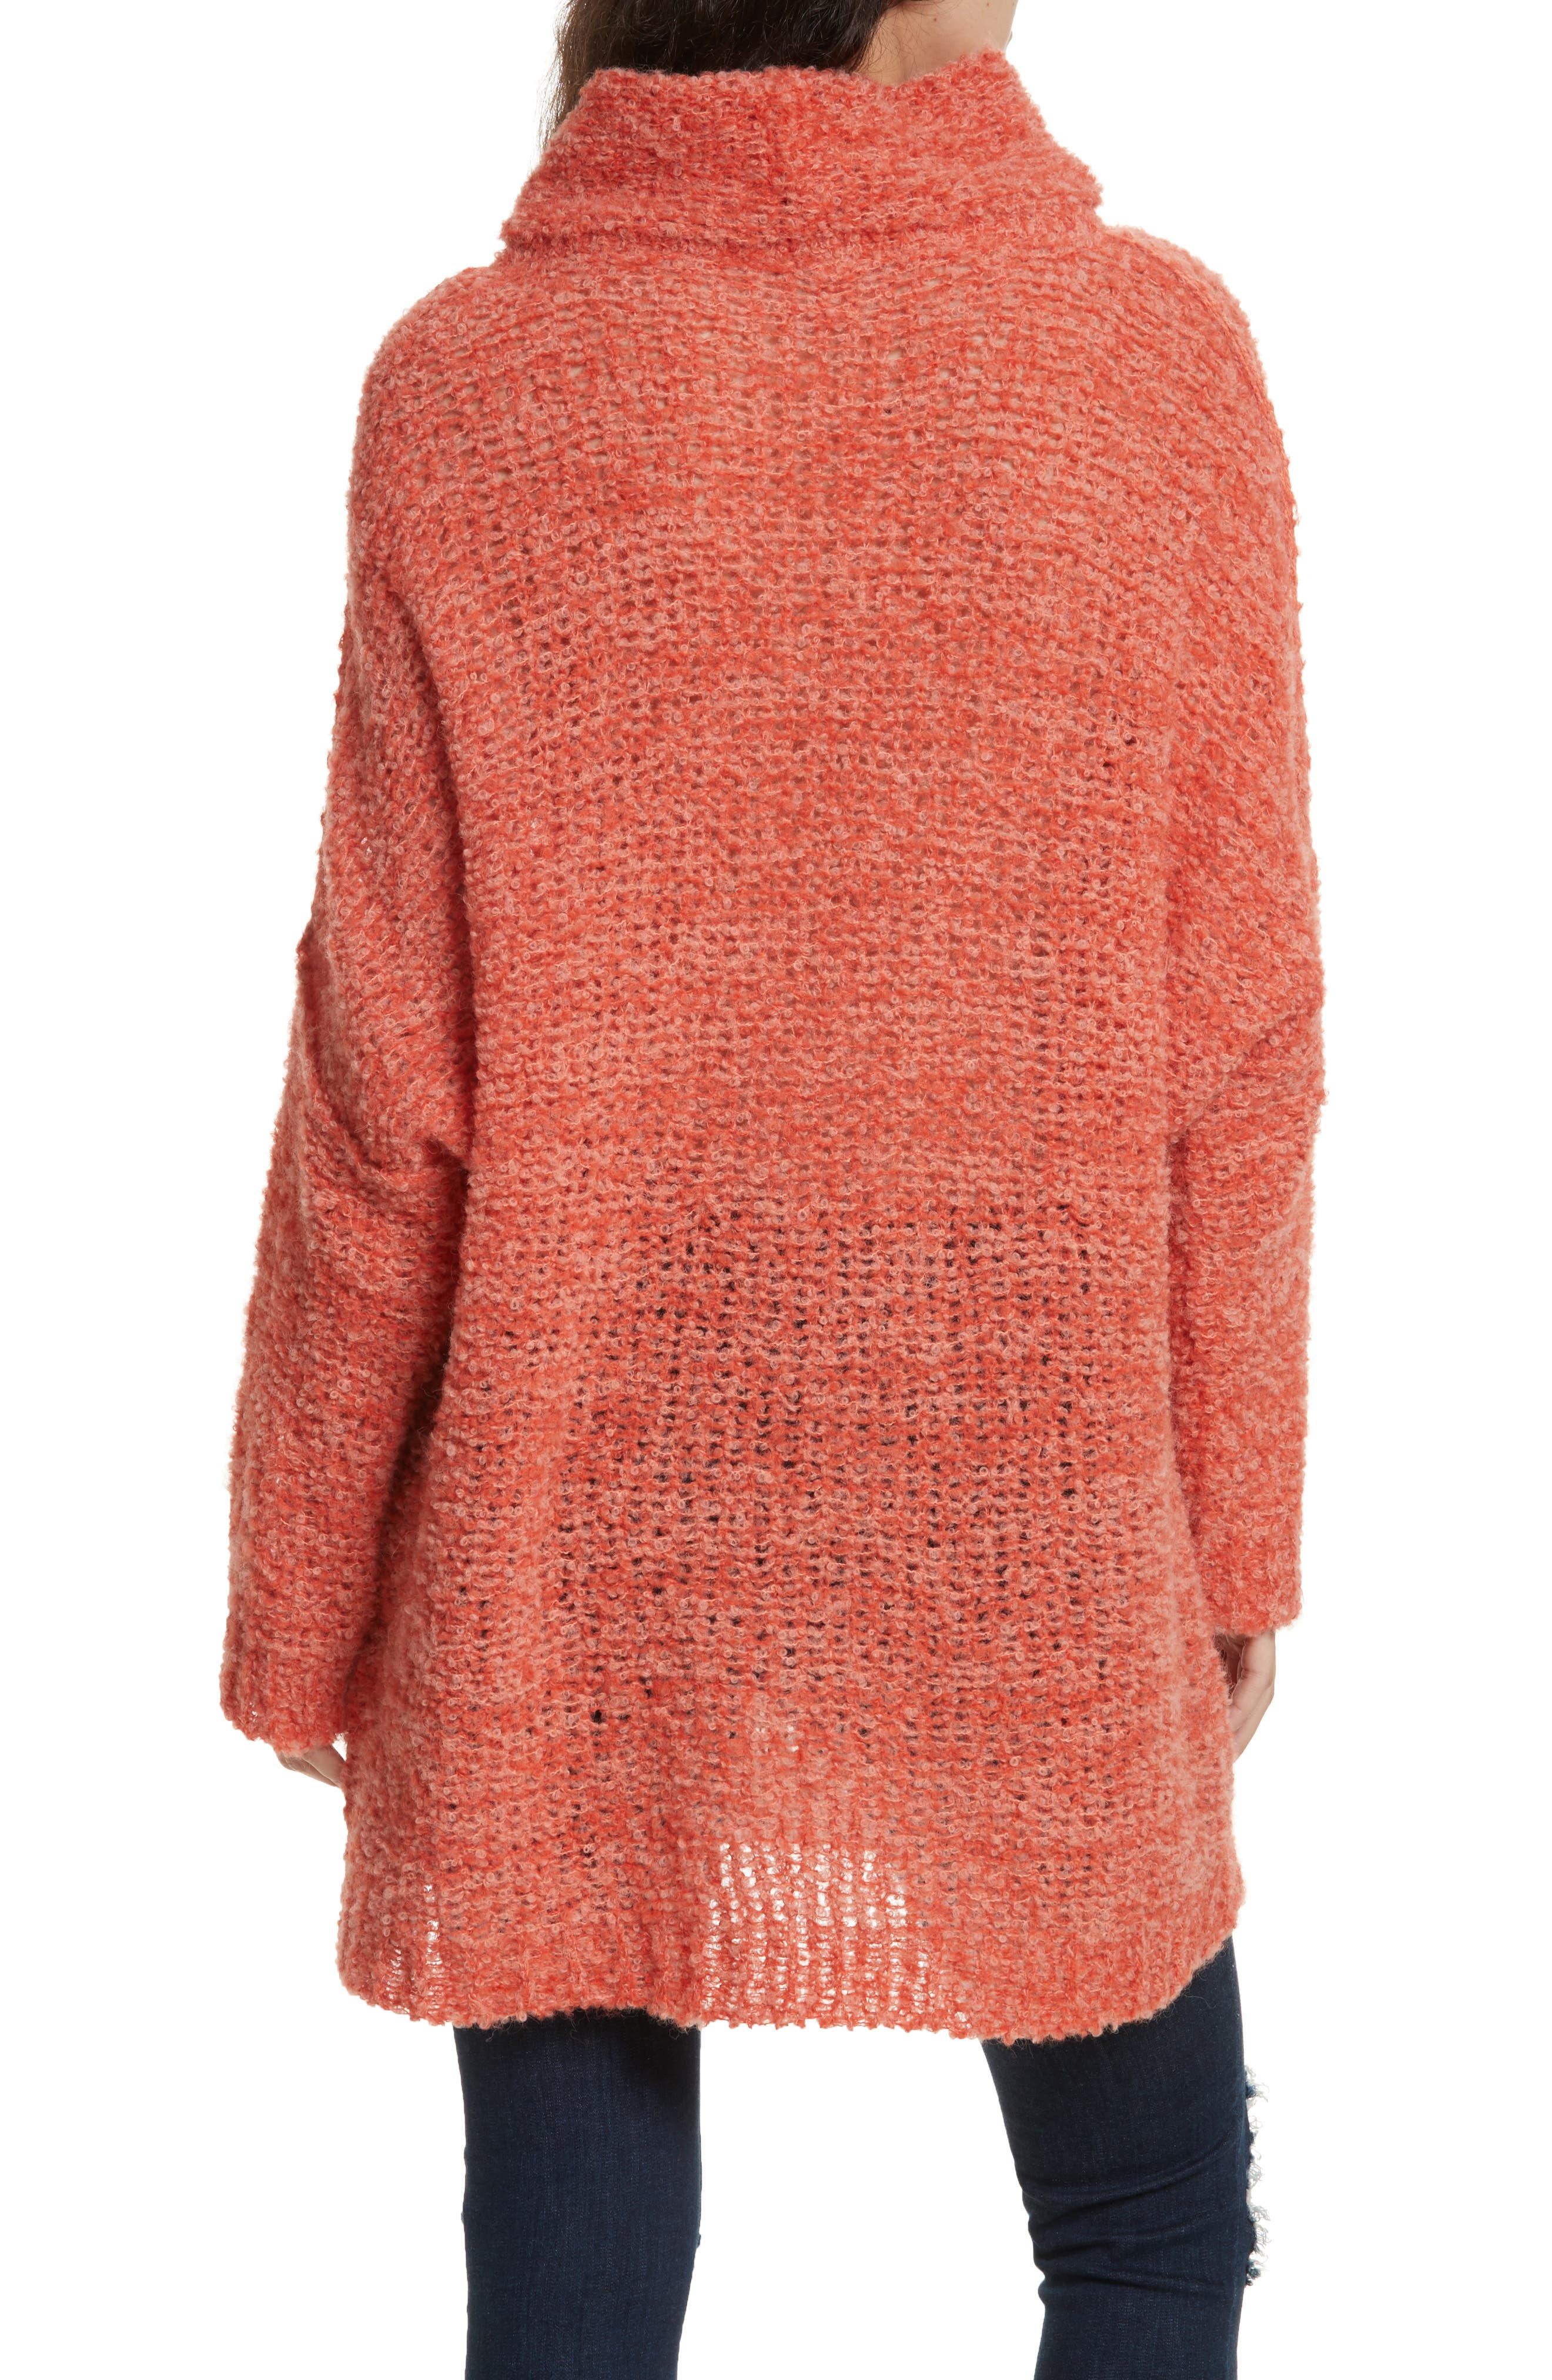 FREE PEOPLE, 'She's All That' Knit Turtleneck Sweater, Alternate thumbnail 2, color, 800